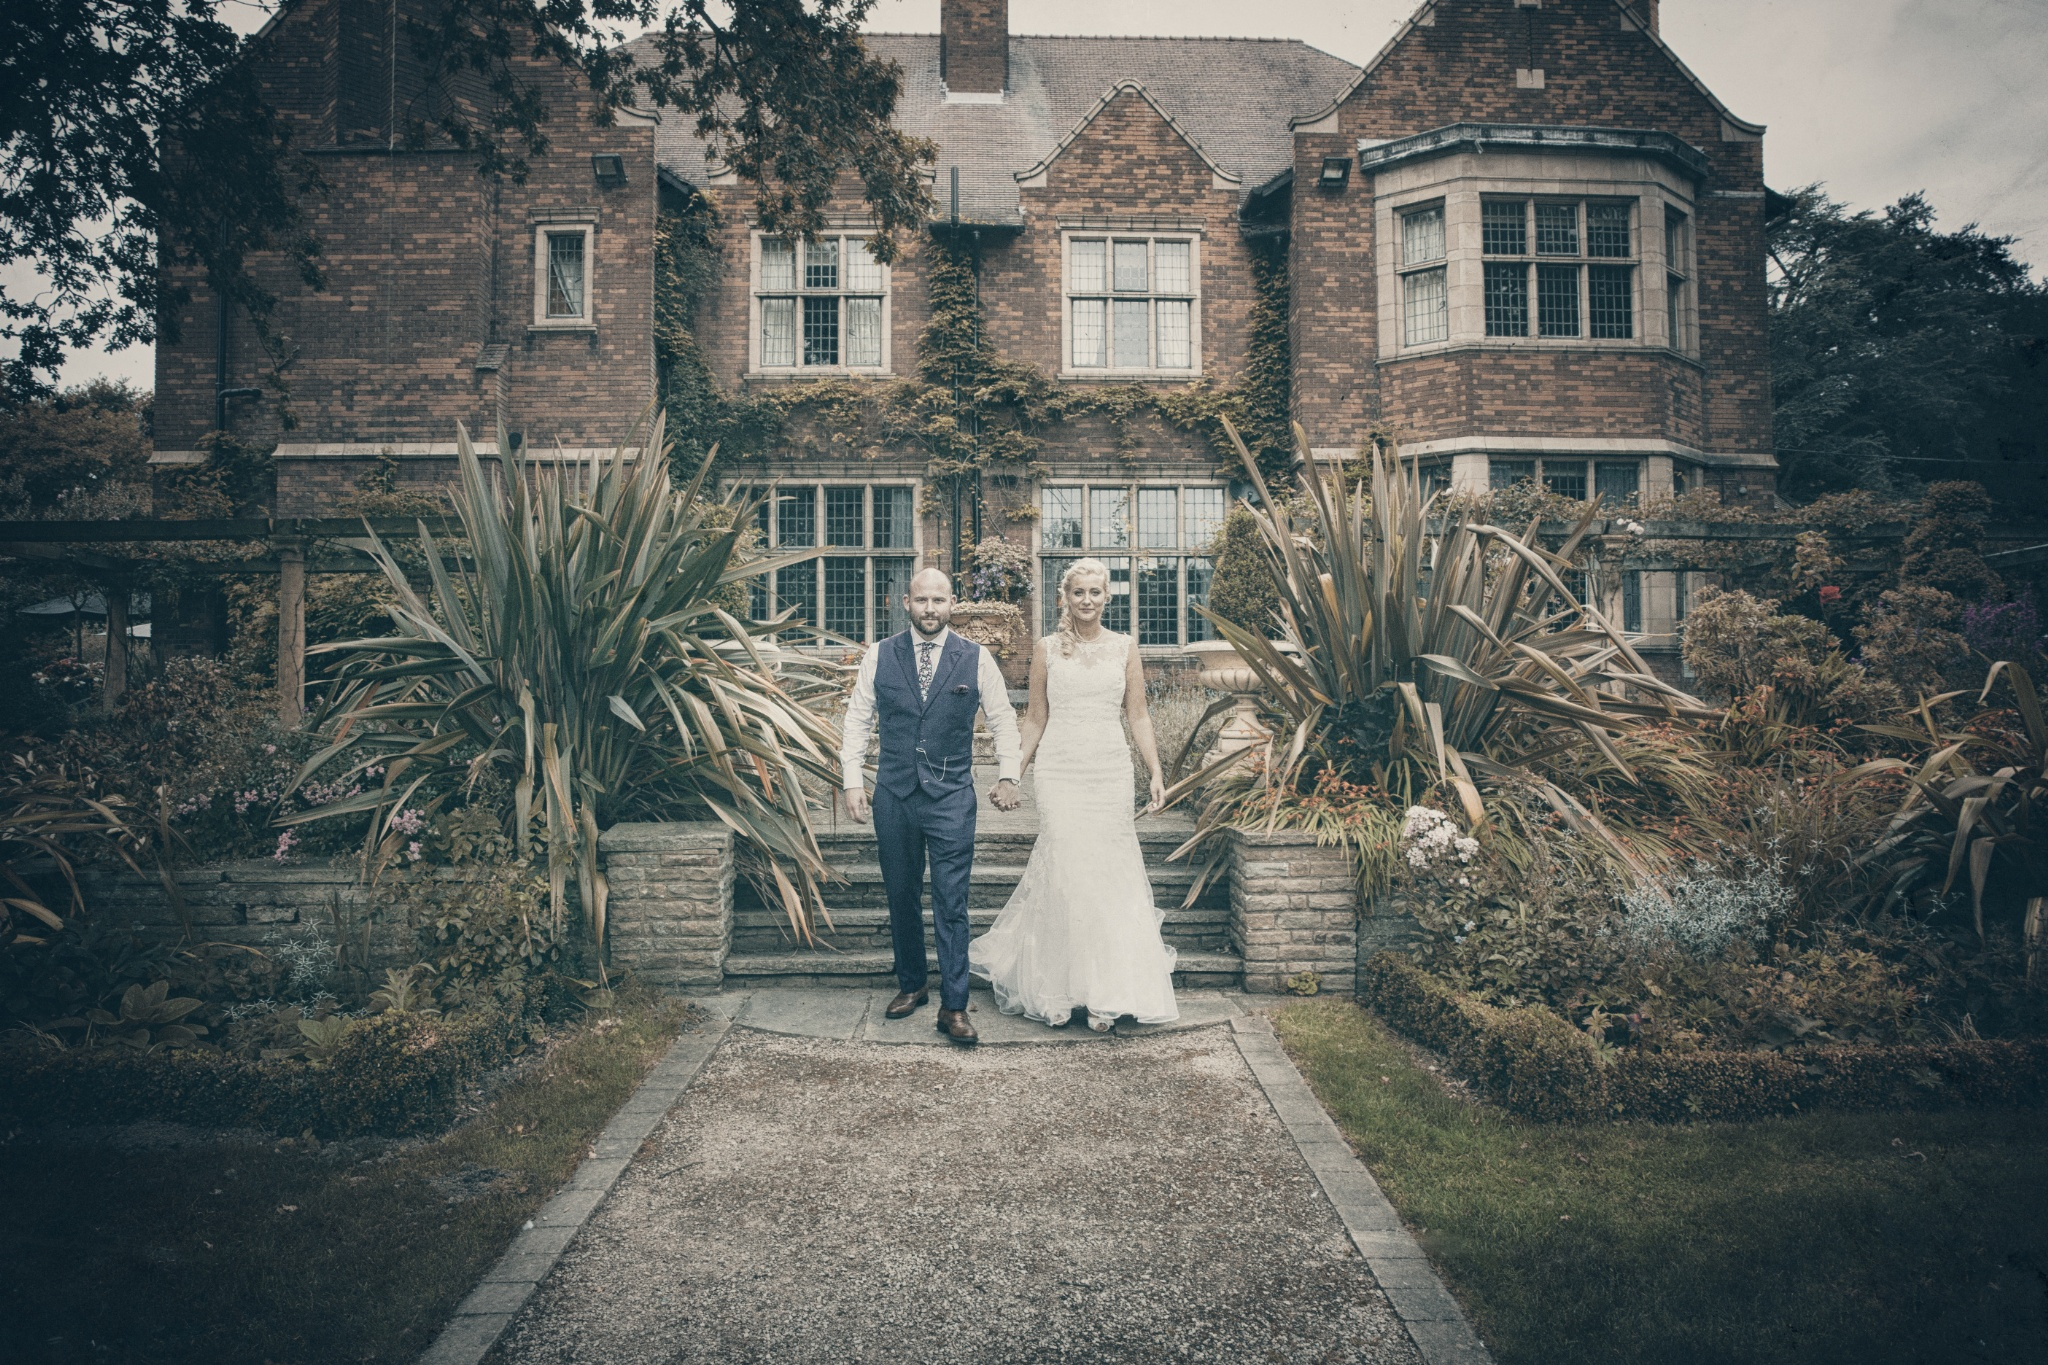 Wayne Hudson Photography, Lucria Creative, Cornwall and Devon wedding photographer based in Launceston, Mark and Lizzie at Moxhull hall